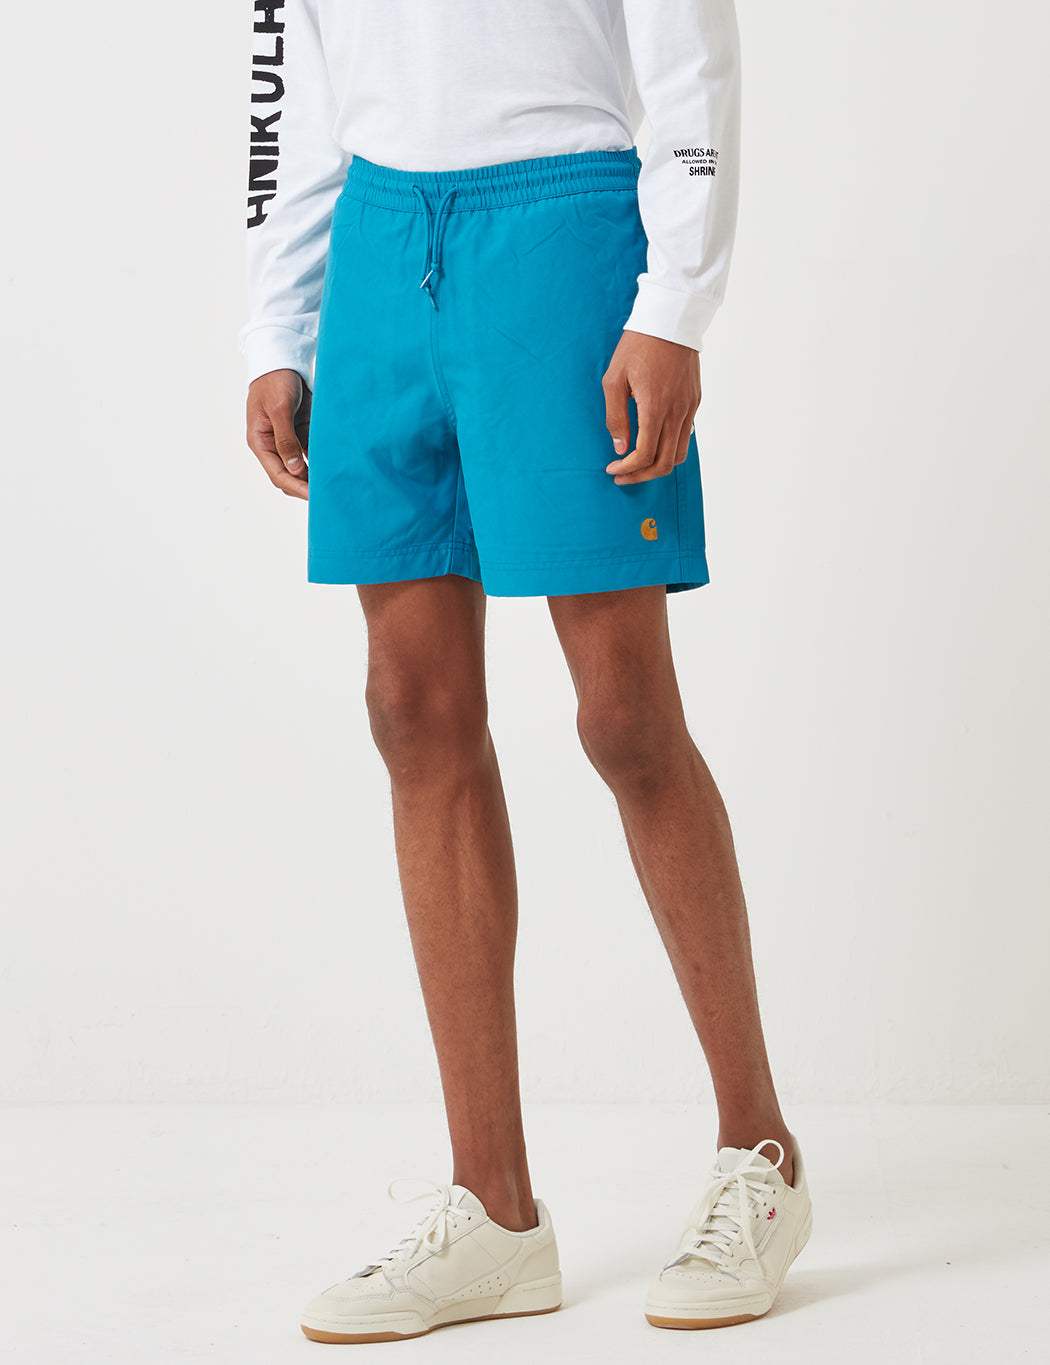 520d18711e Carhartt Chase Swim Shorts - Pizol Blue | URBAN EXCESS.